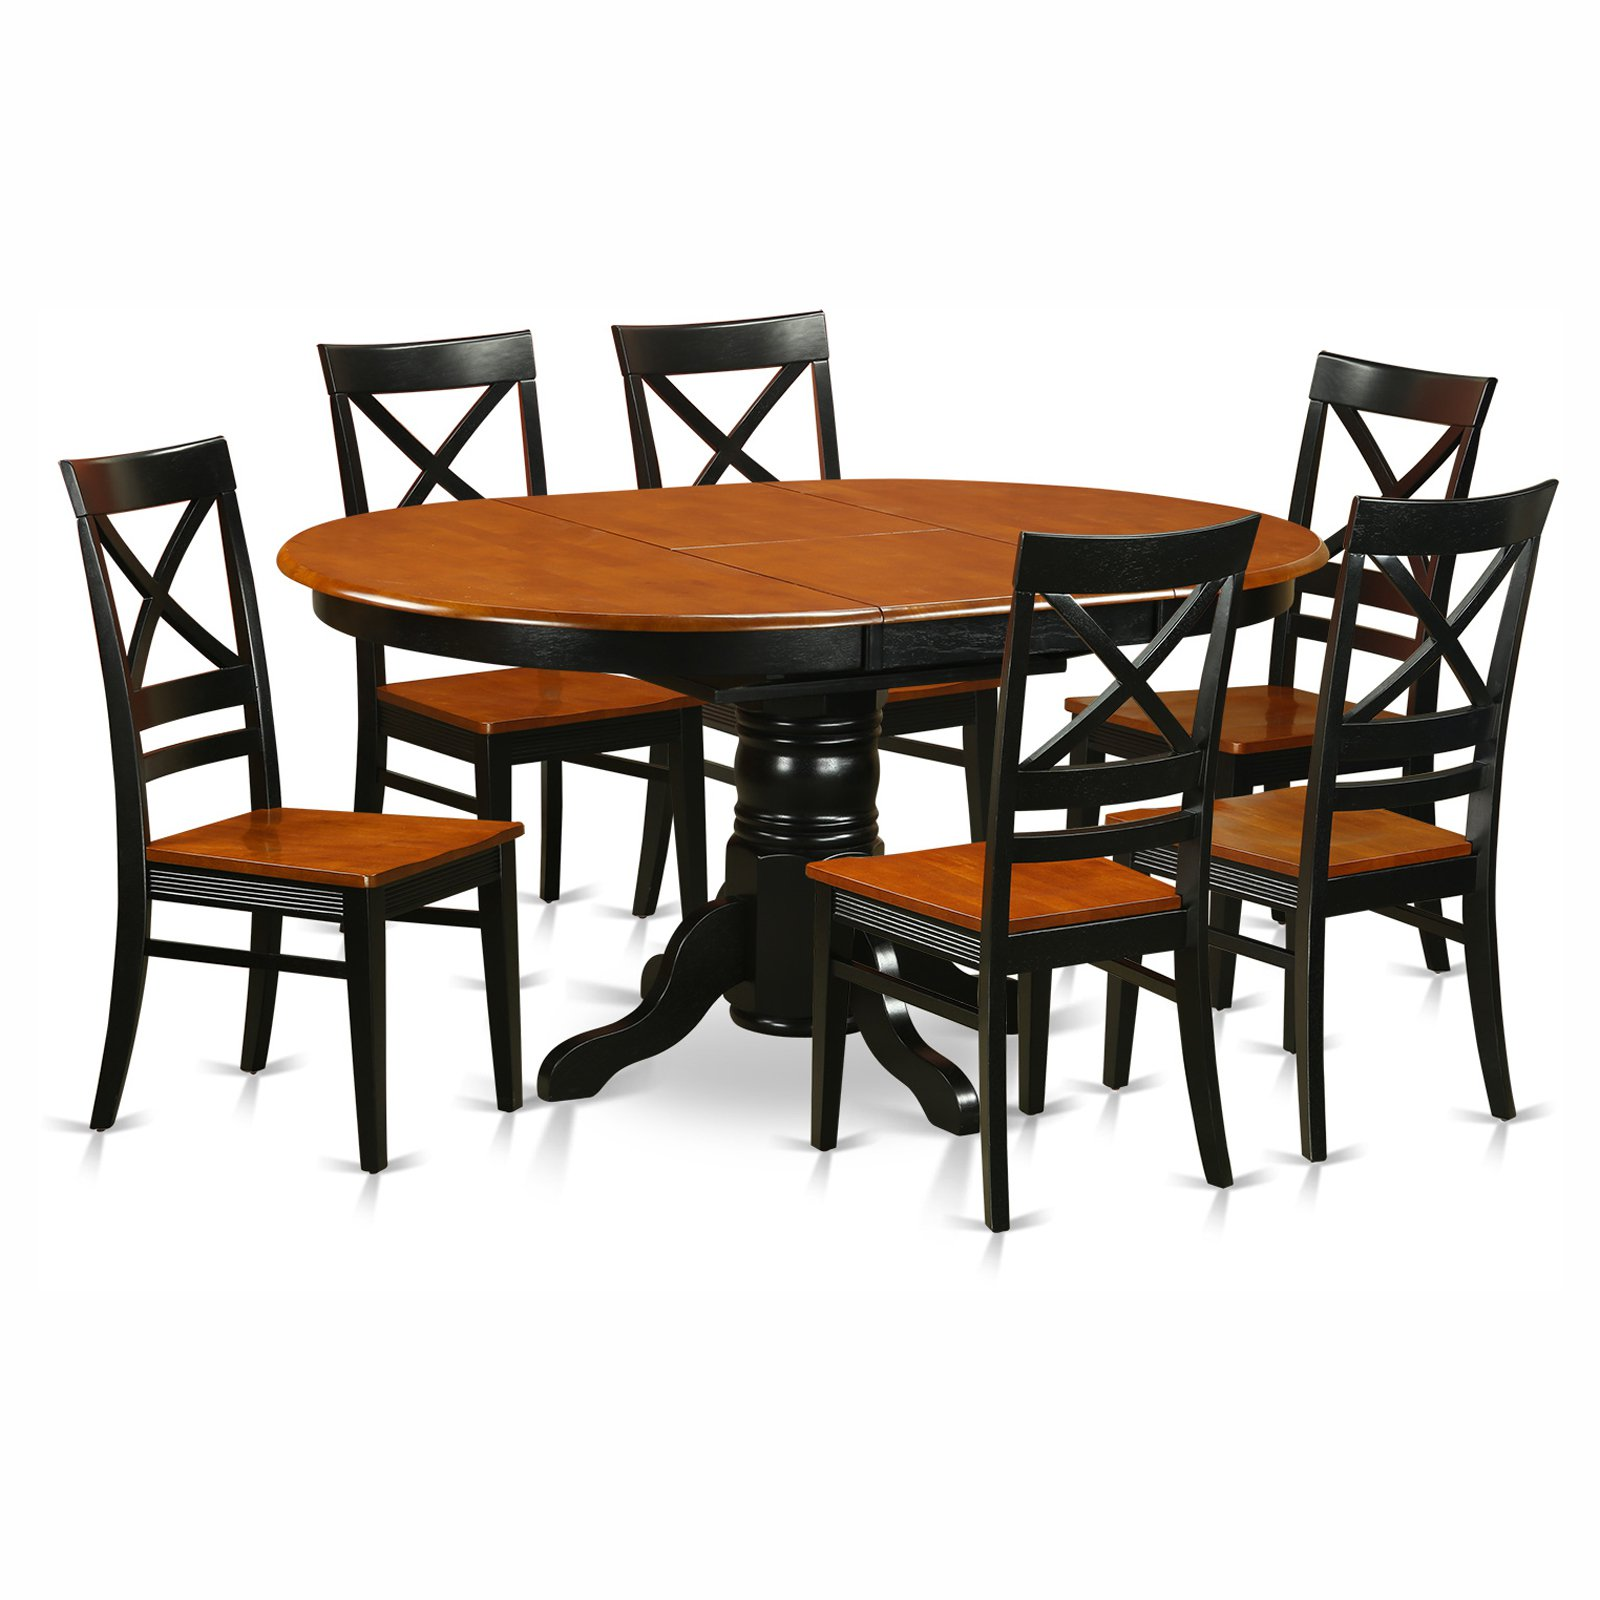 East West Furniture Avon 7 Piece Pedestal Oval Dining Table Set with Quincy Wooden Seat Chairs